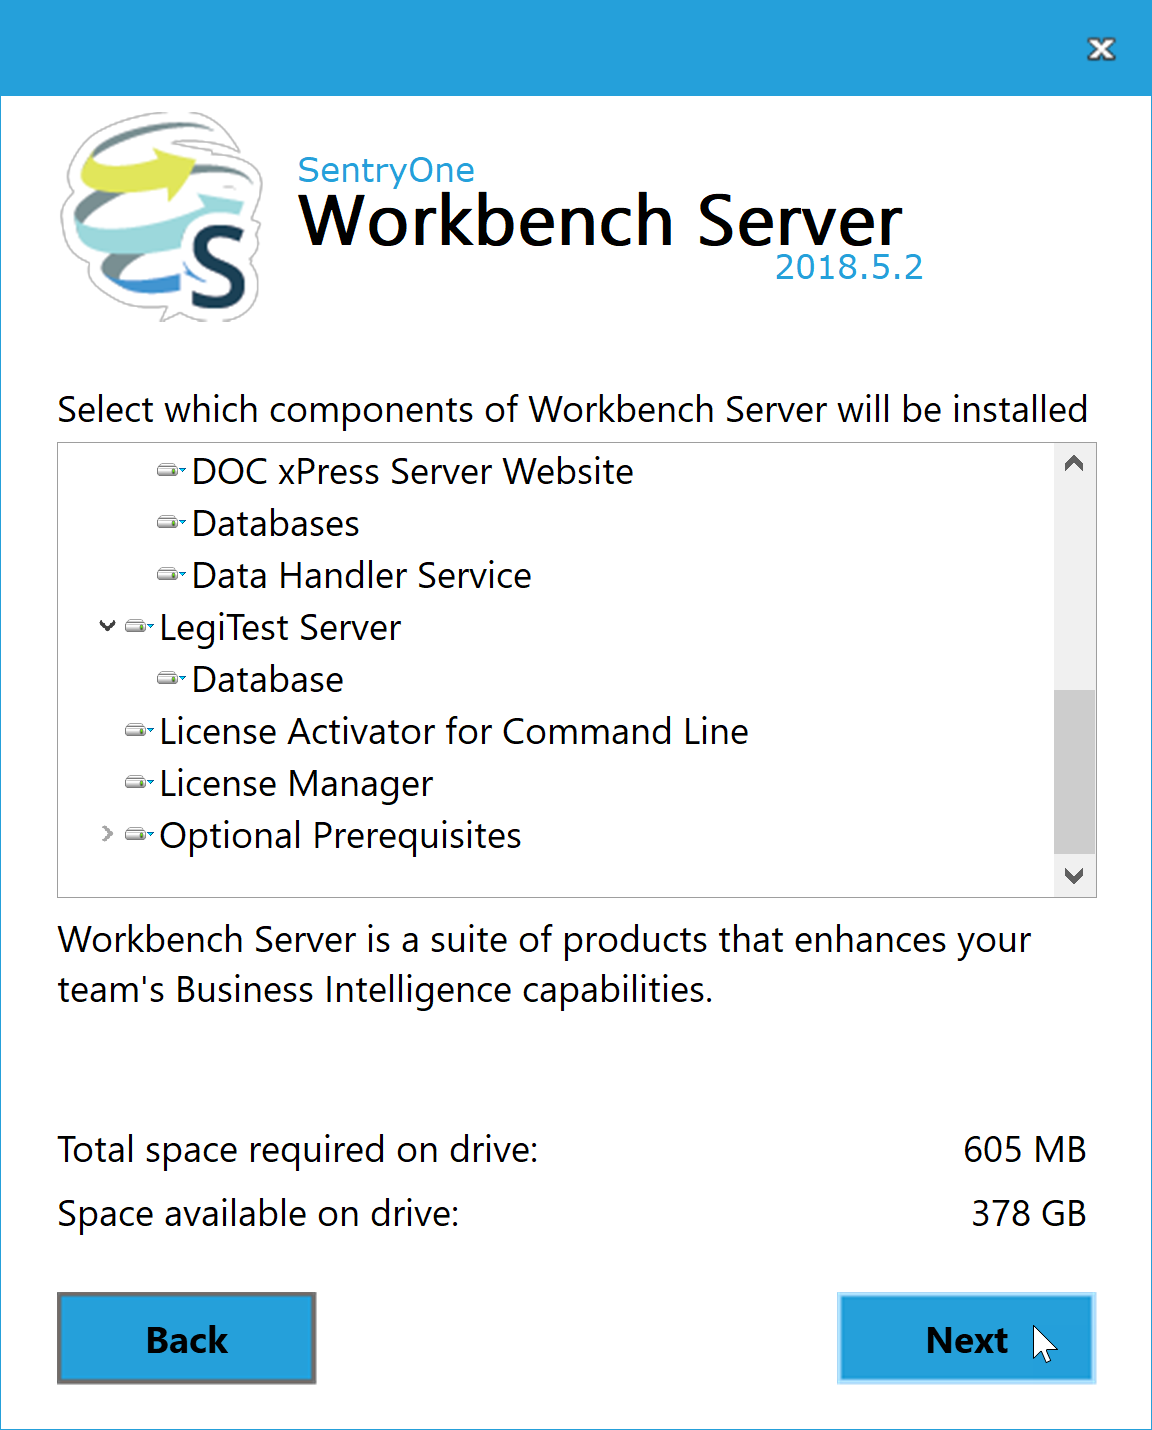 Workbench Server Component selection